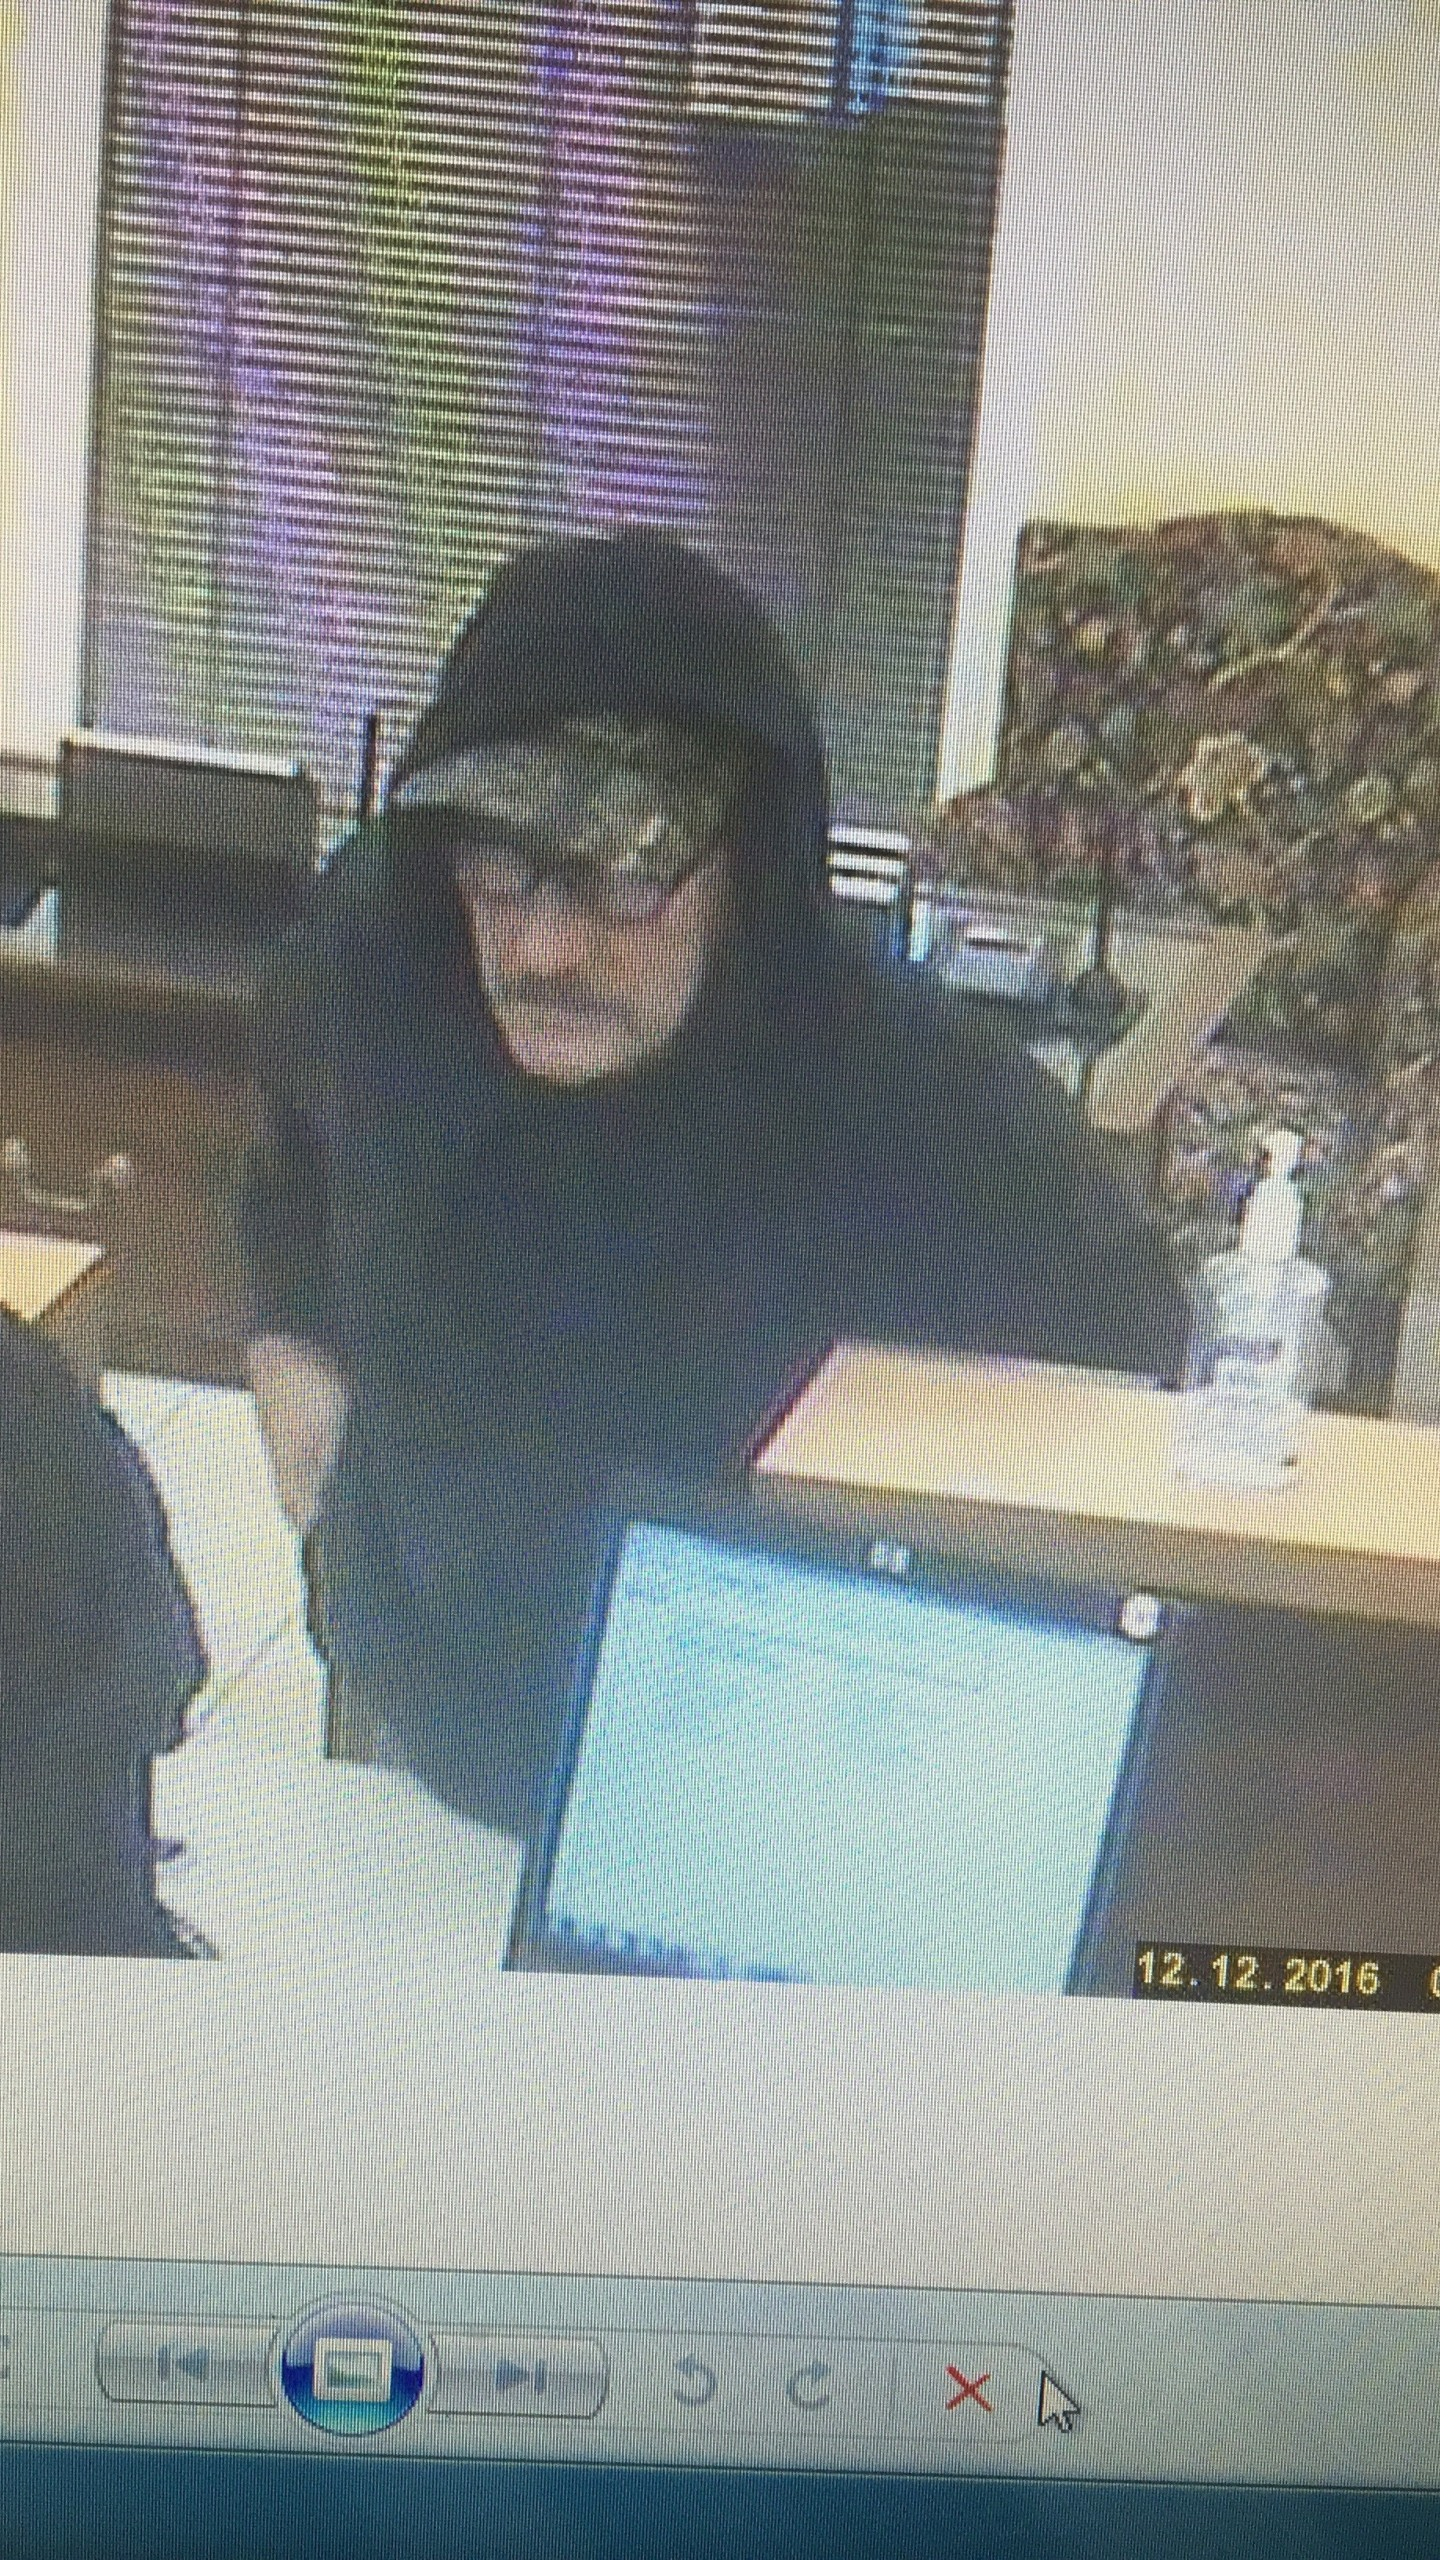 first-citizens-bank-robbery-suspect_316075